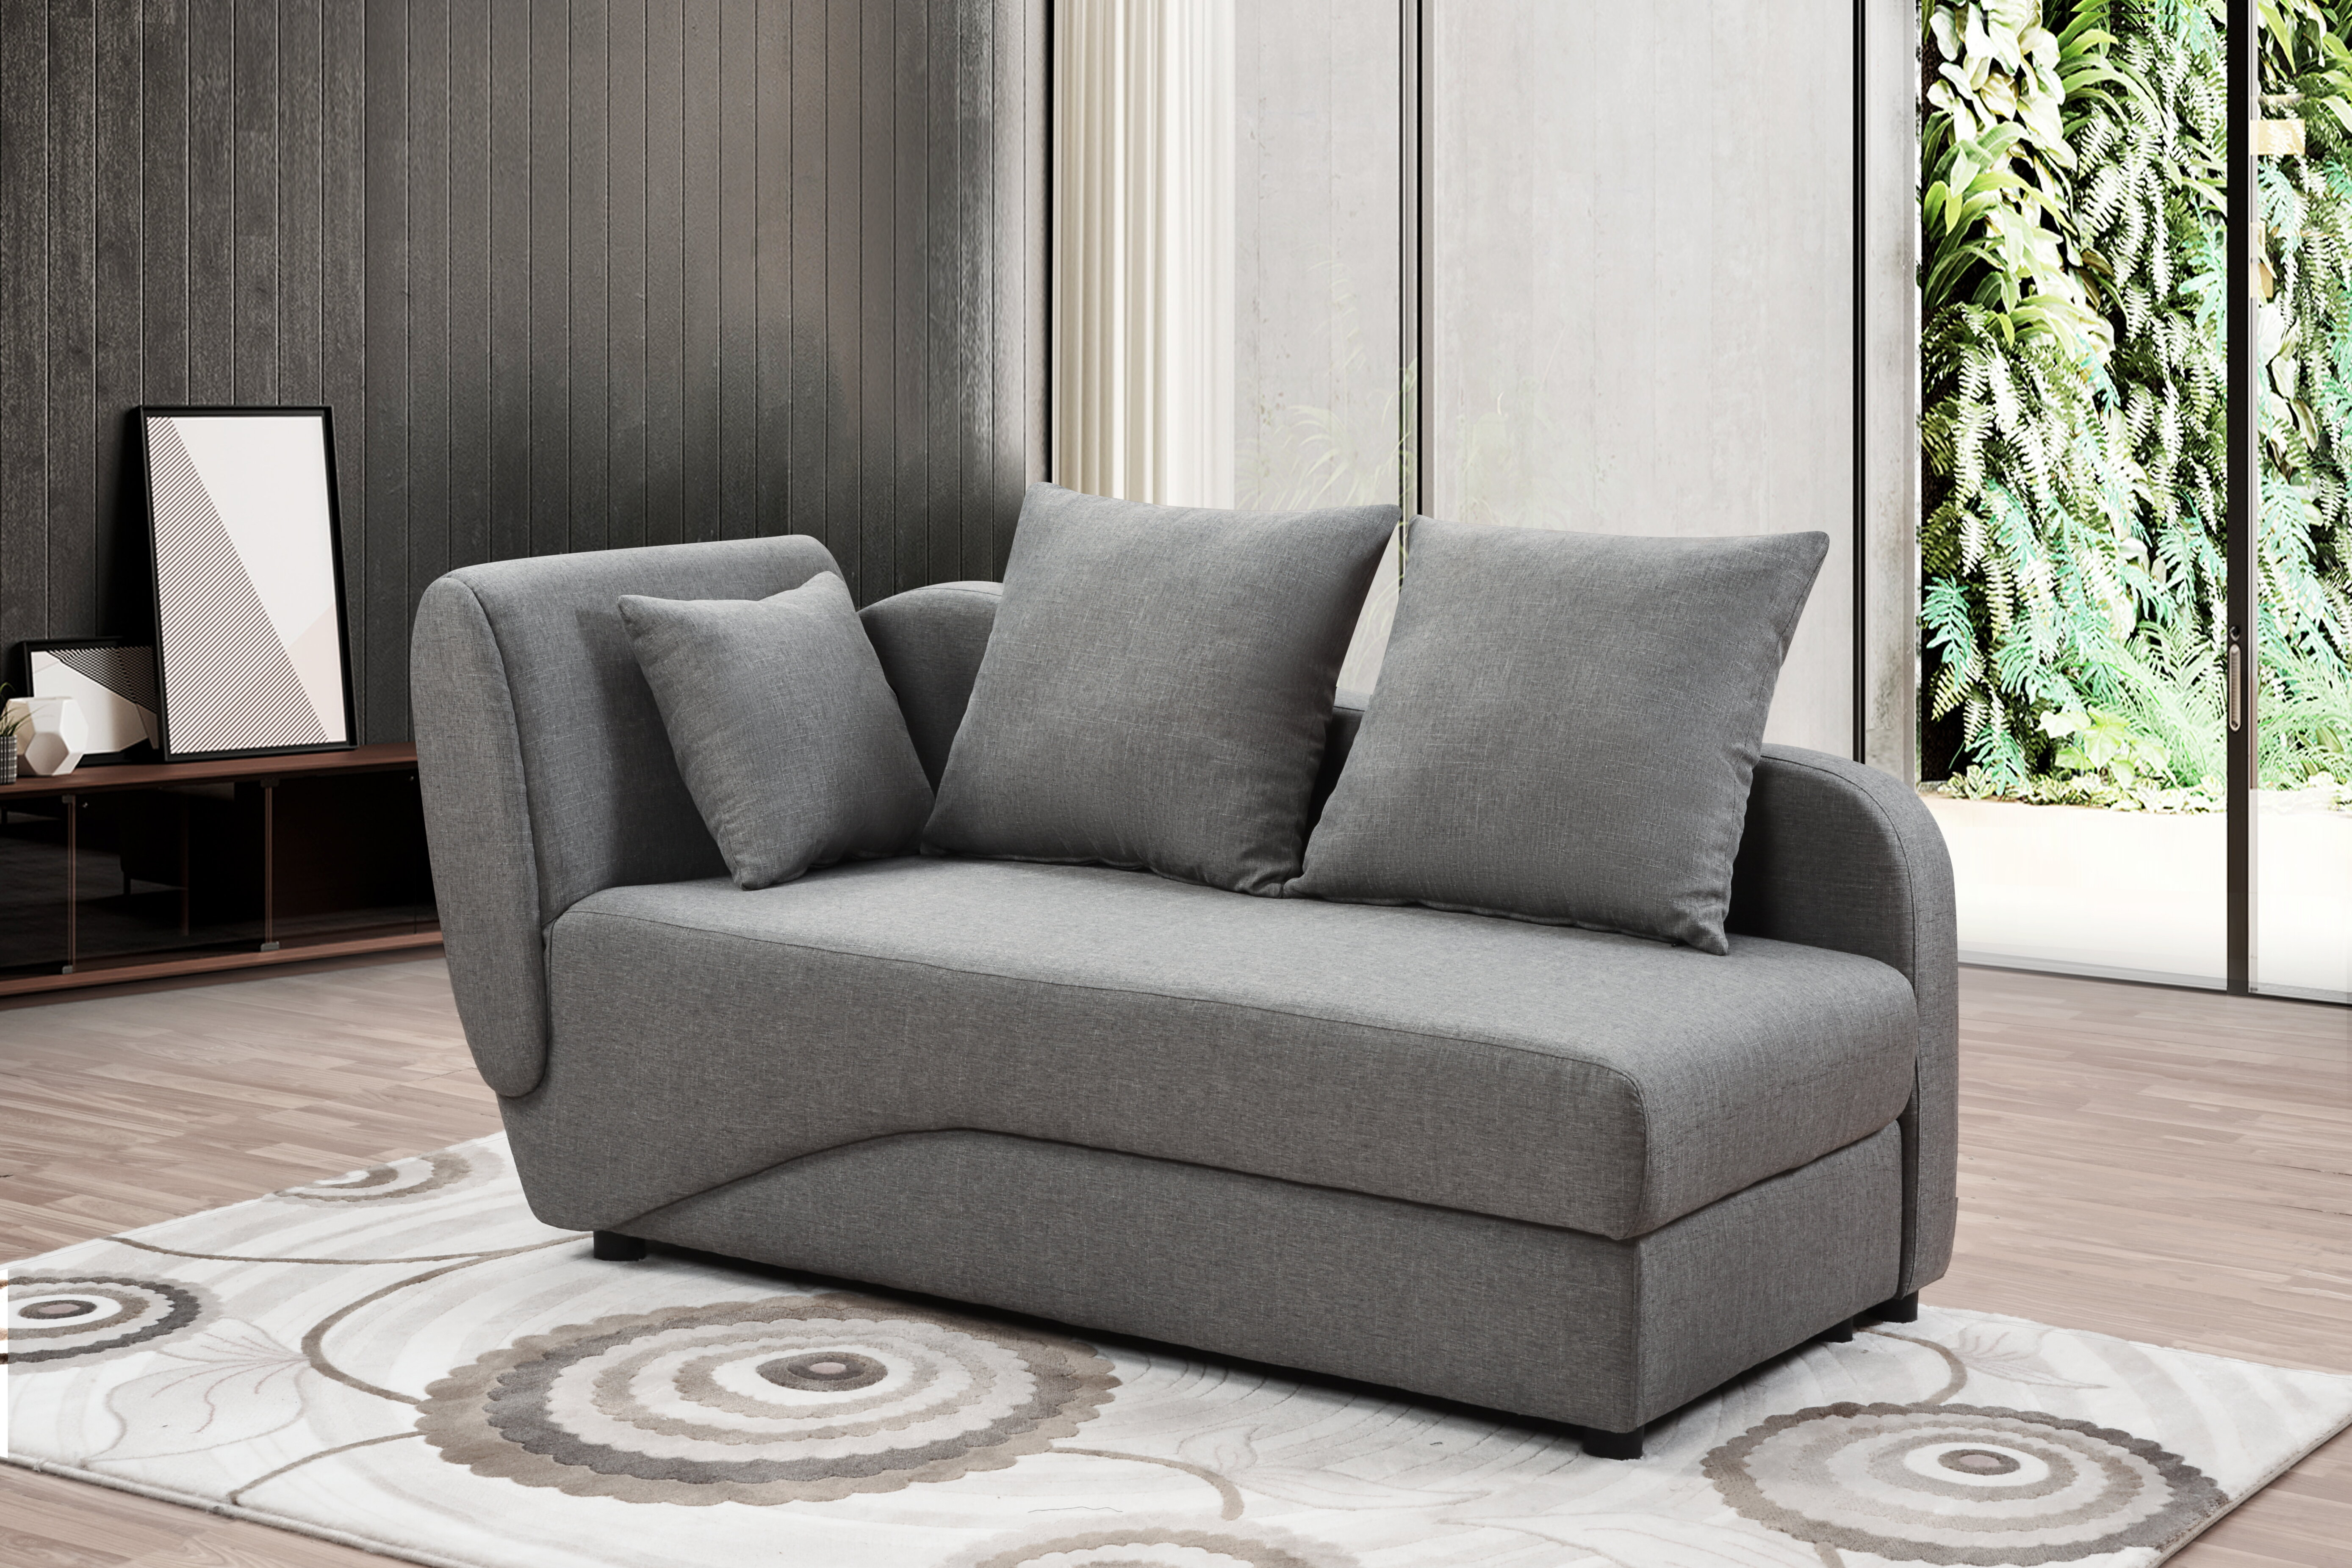 Latitude Run Light Grey Convertible Chaise Lounge Sofa Bed With Storage Wayfair Ca